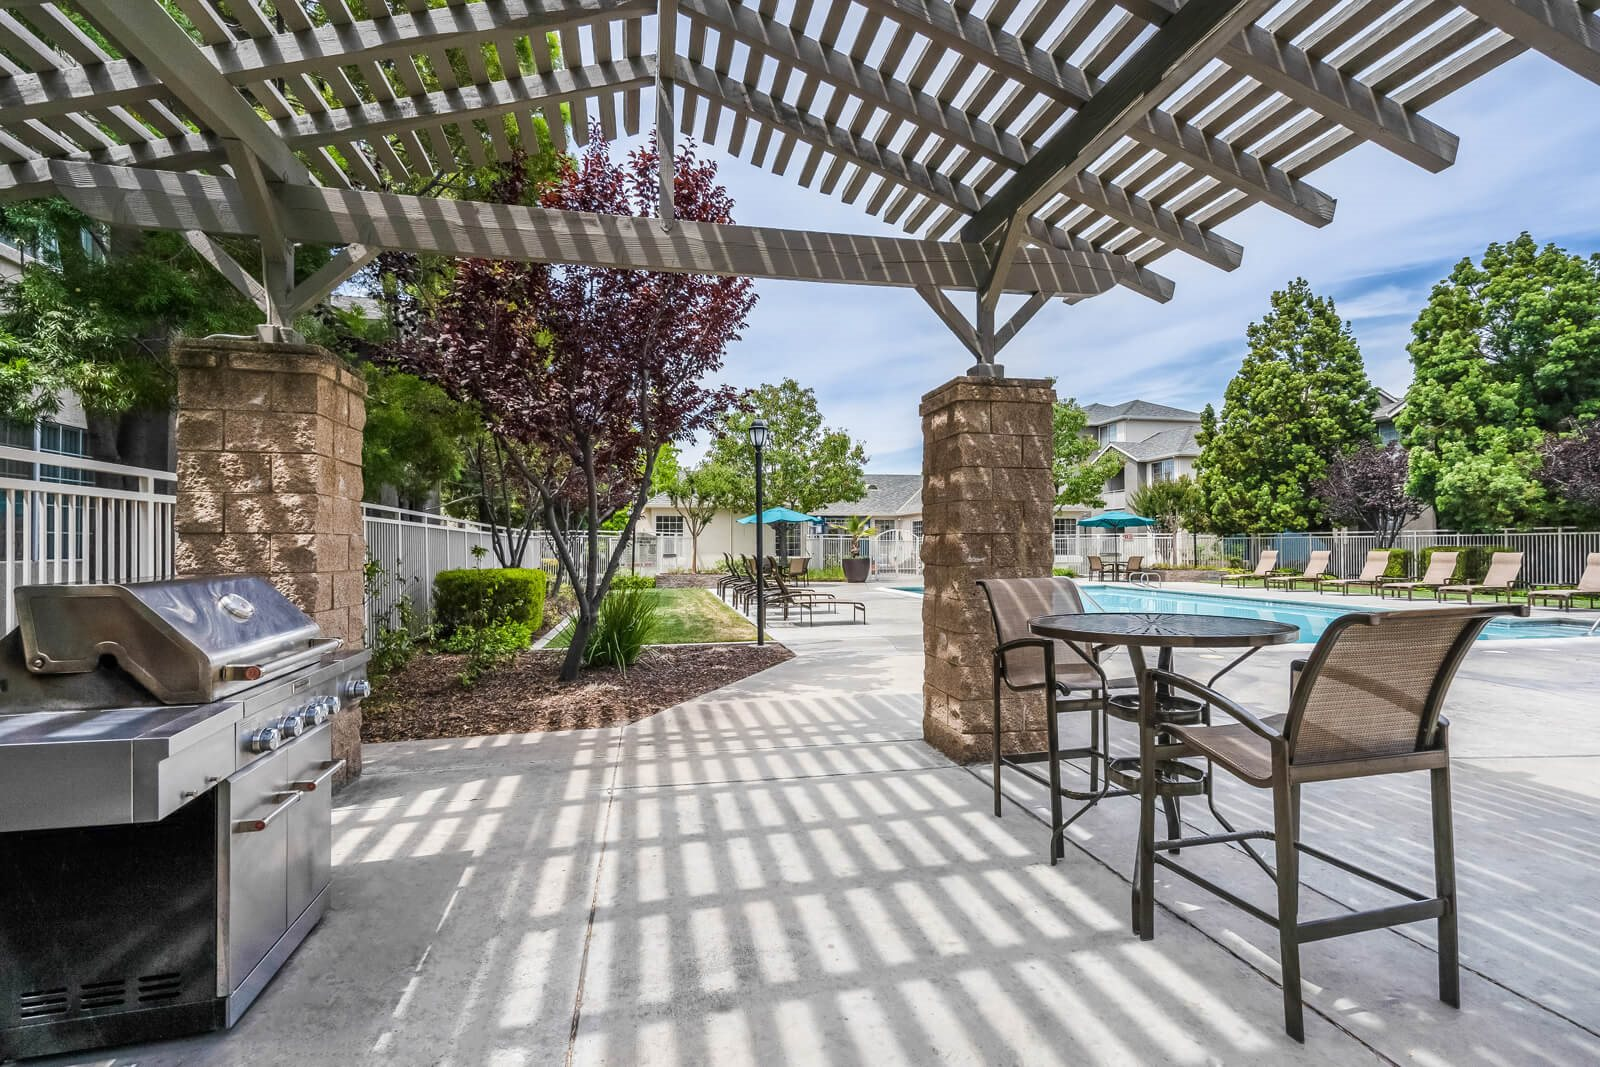 Poolside Grilling Area at Pavona Apartments, 760 N. 7th Street, San Jose